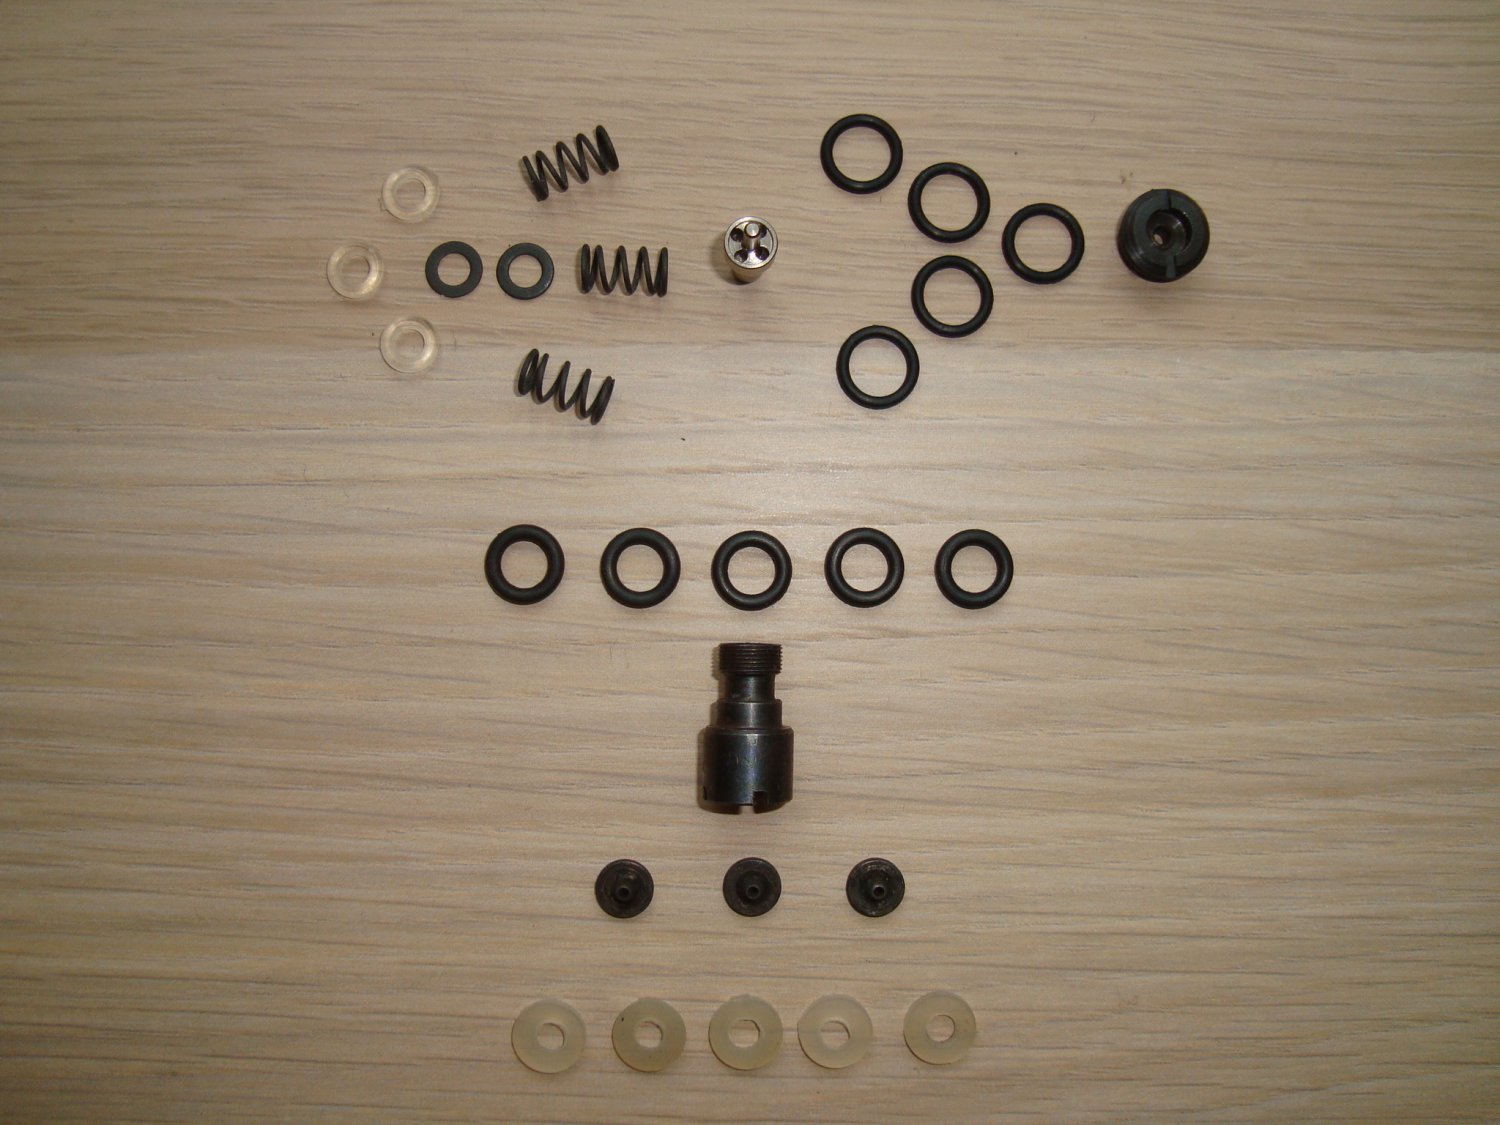 mp 654k magazine parts tuning Baikal suitable all generations newest repair set for upgrade Baikal.